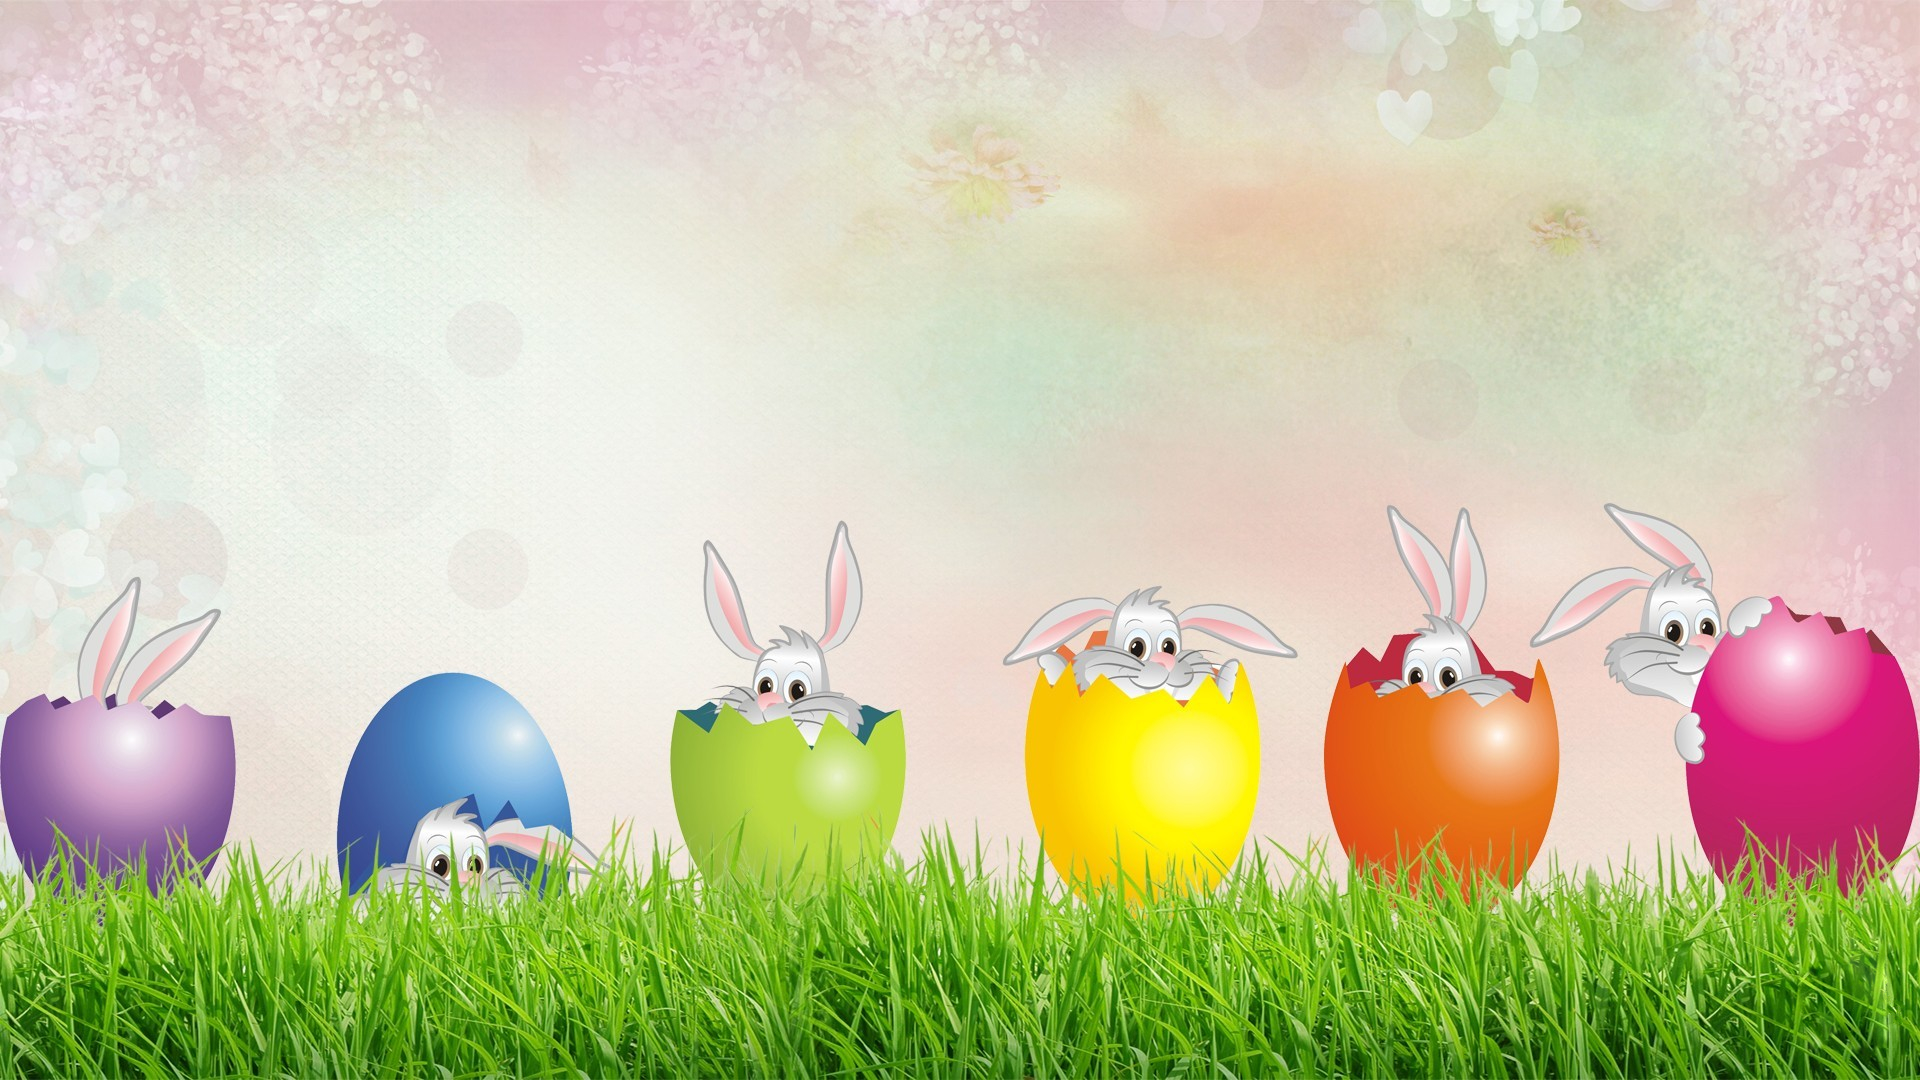 Happy easter hd wallpaper background image 1920x1080 - Easter bunny wallpaper ...